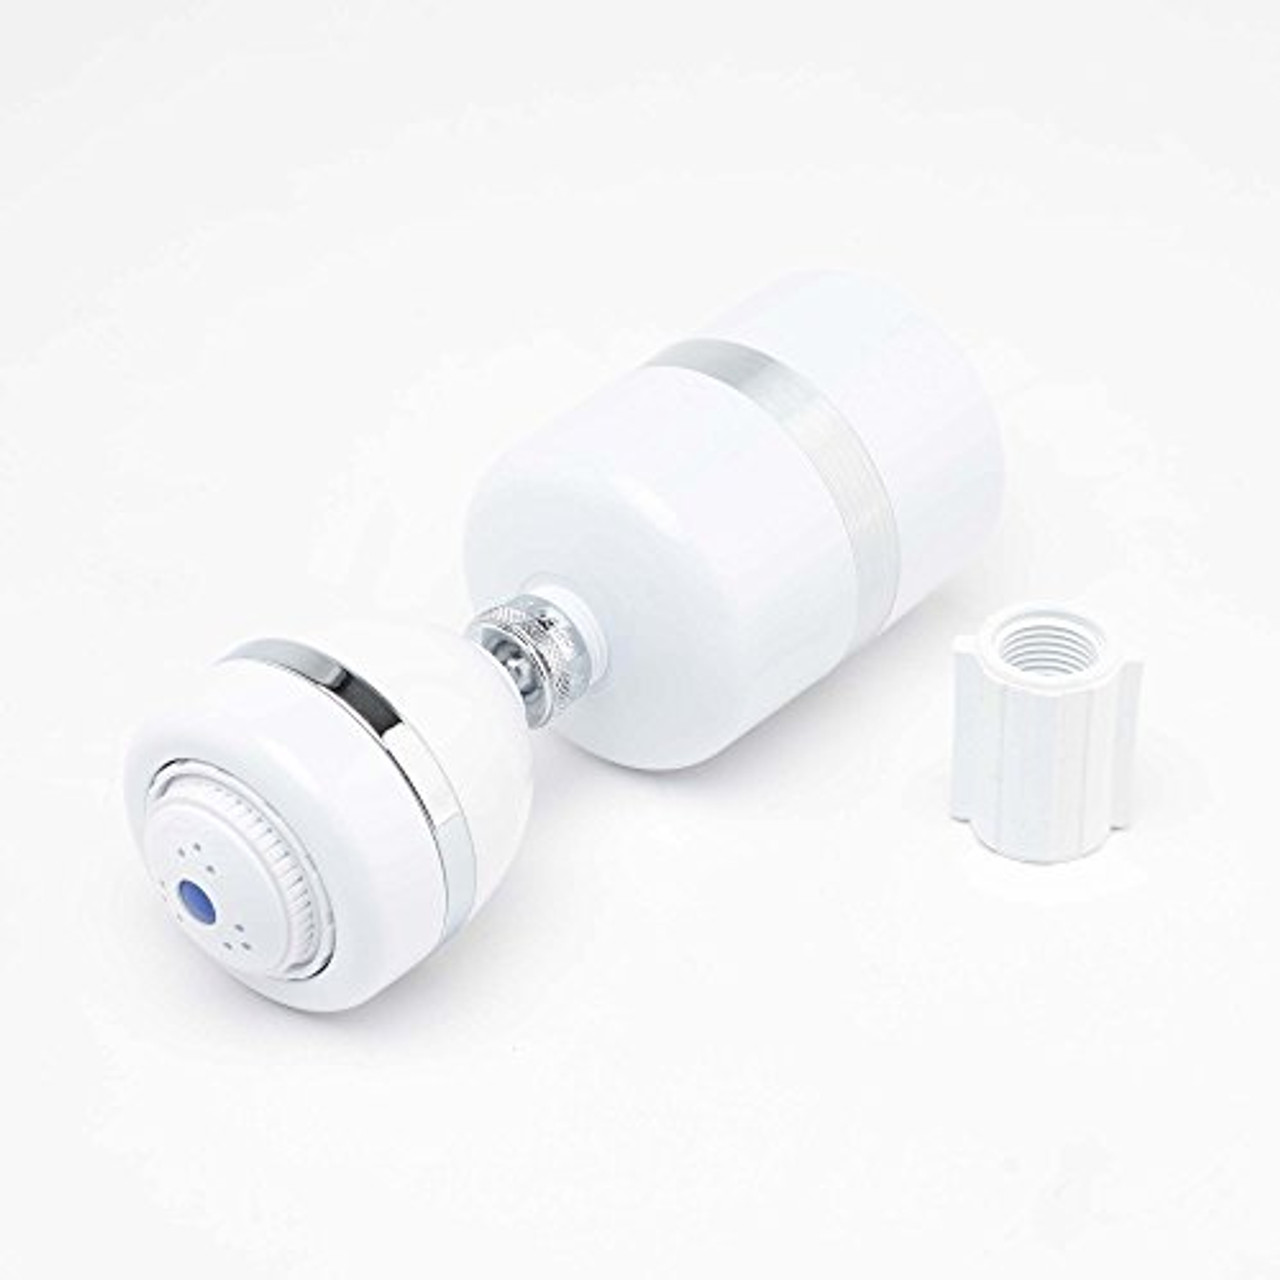 Berkey Shower Filter with Massaging Shower Head - Reduces up to 95% of chlorine